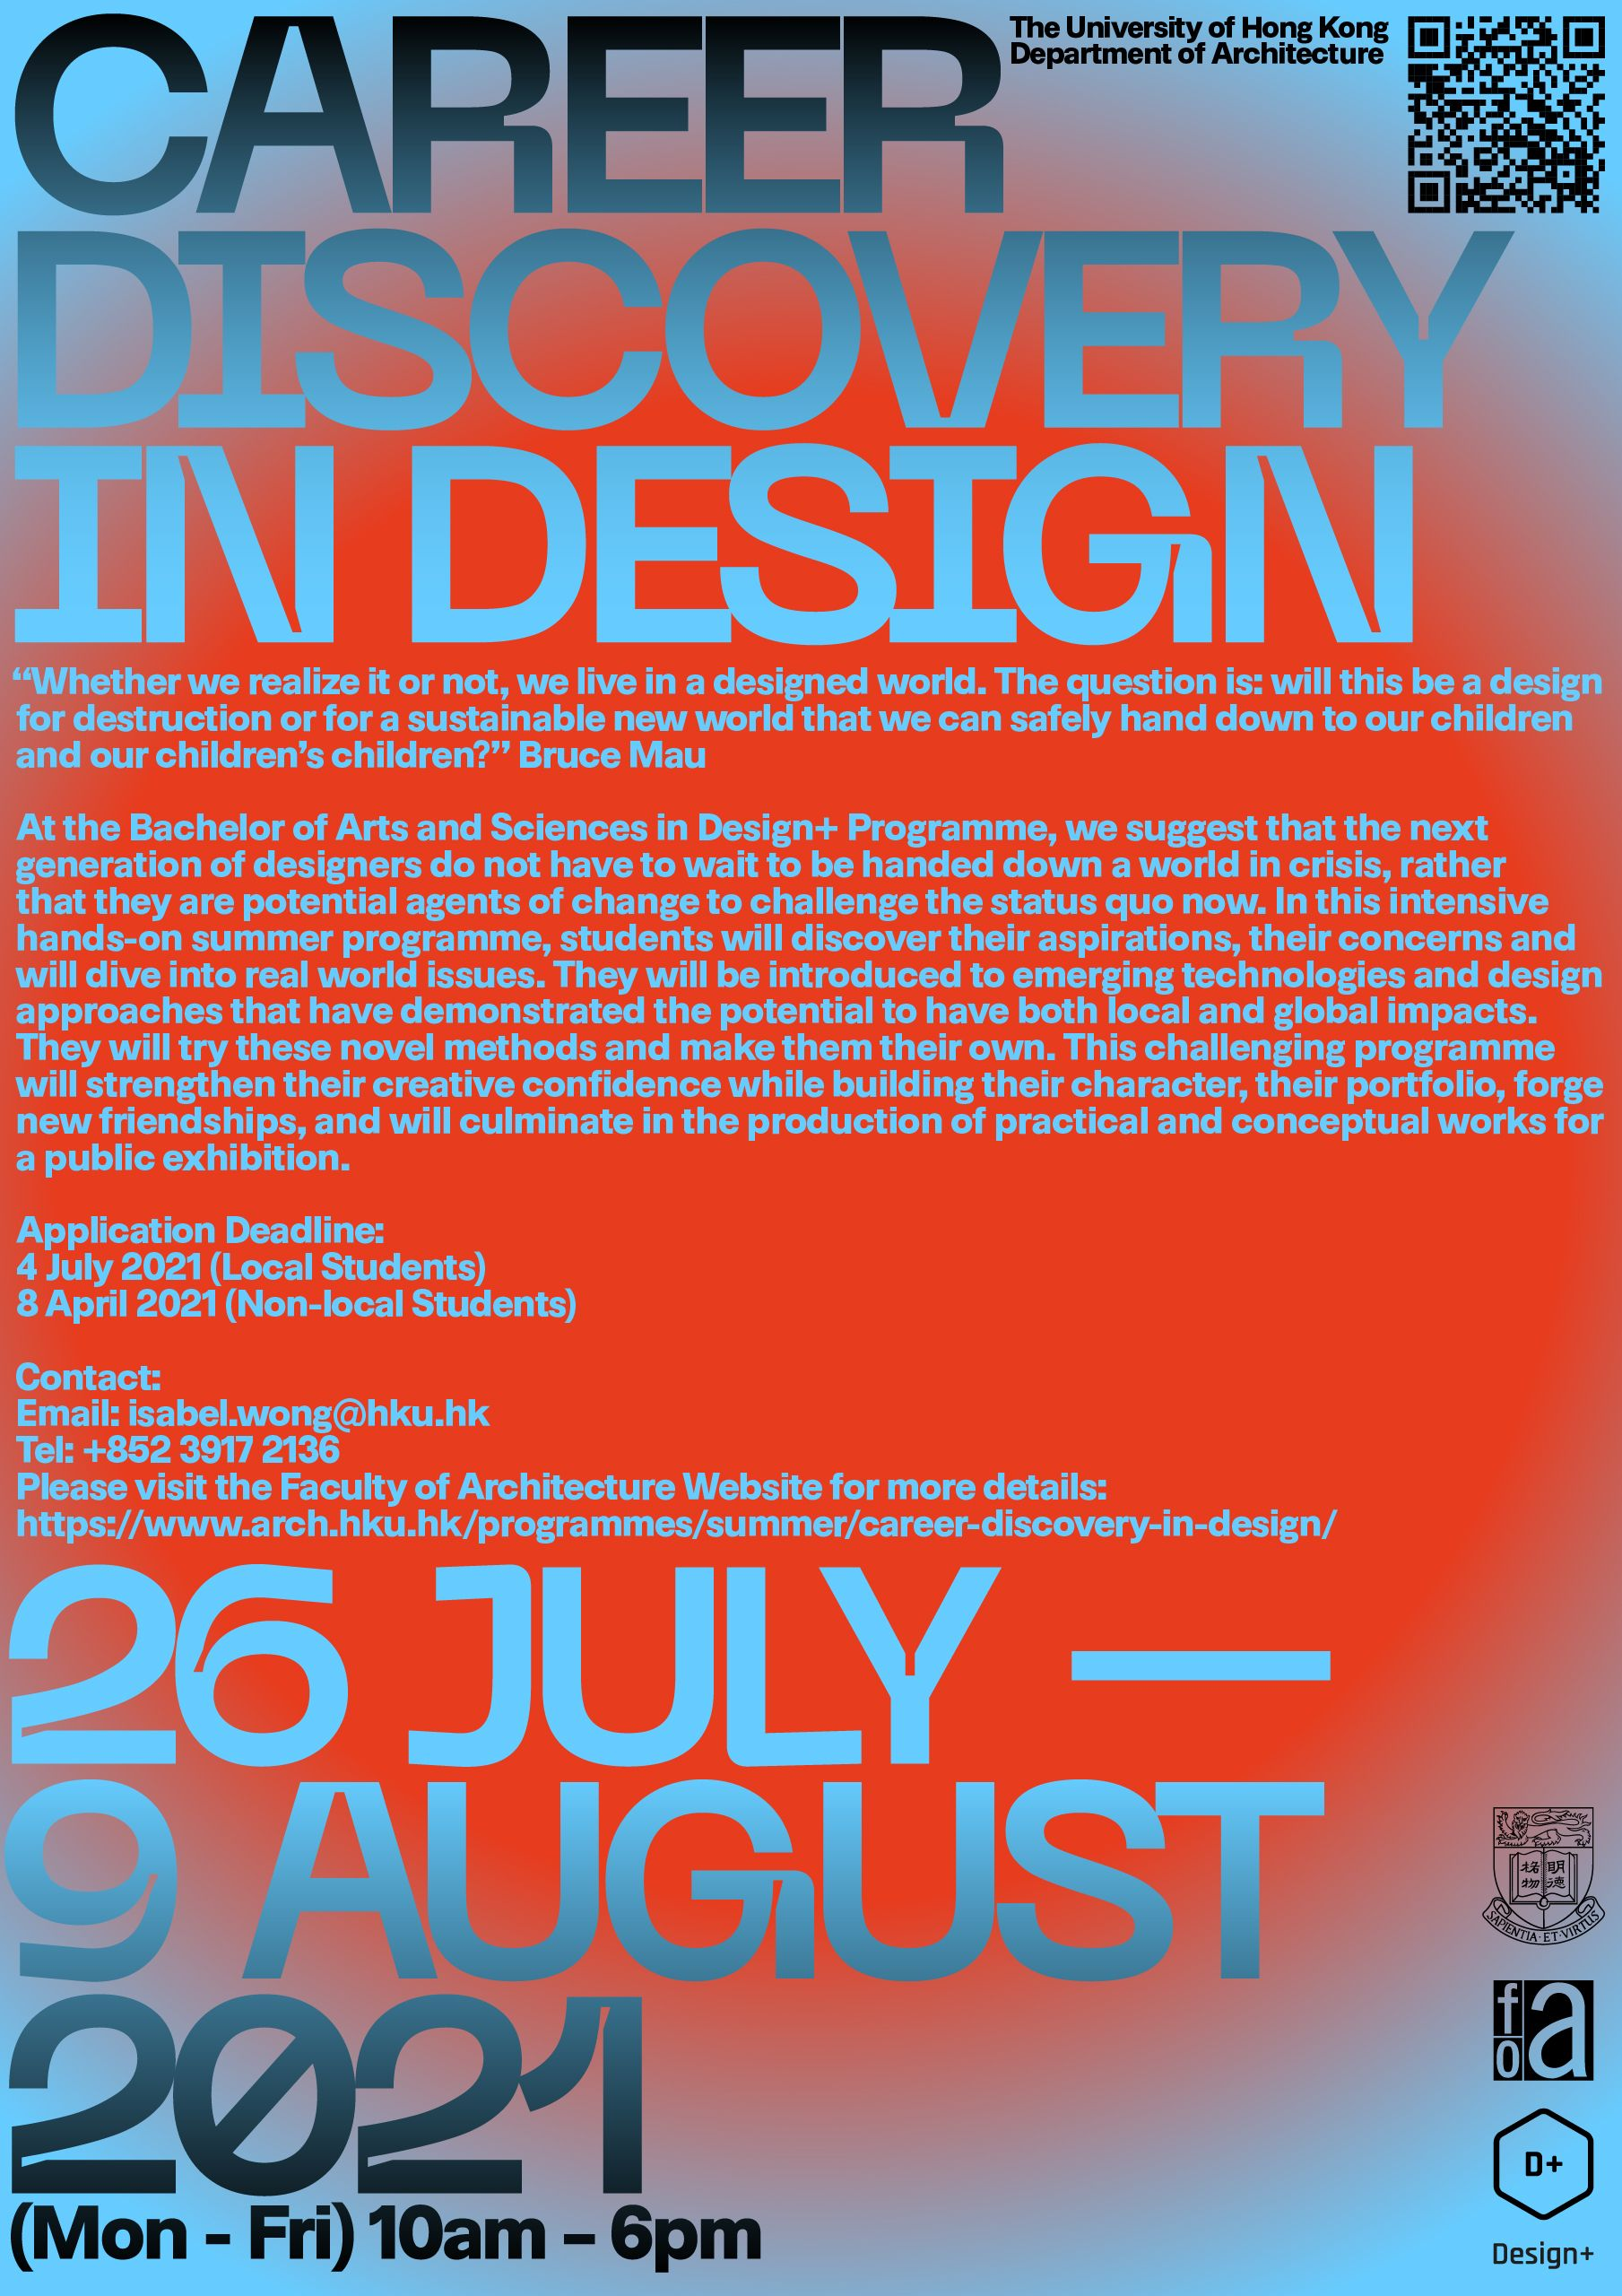 Enlarge photo: Poster of Career Discovery in Design 2021